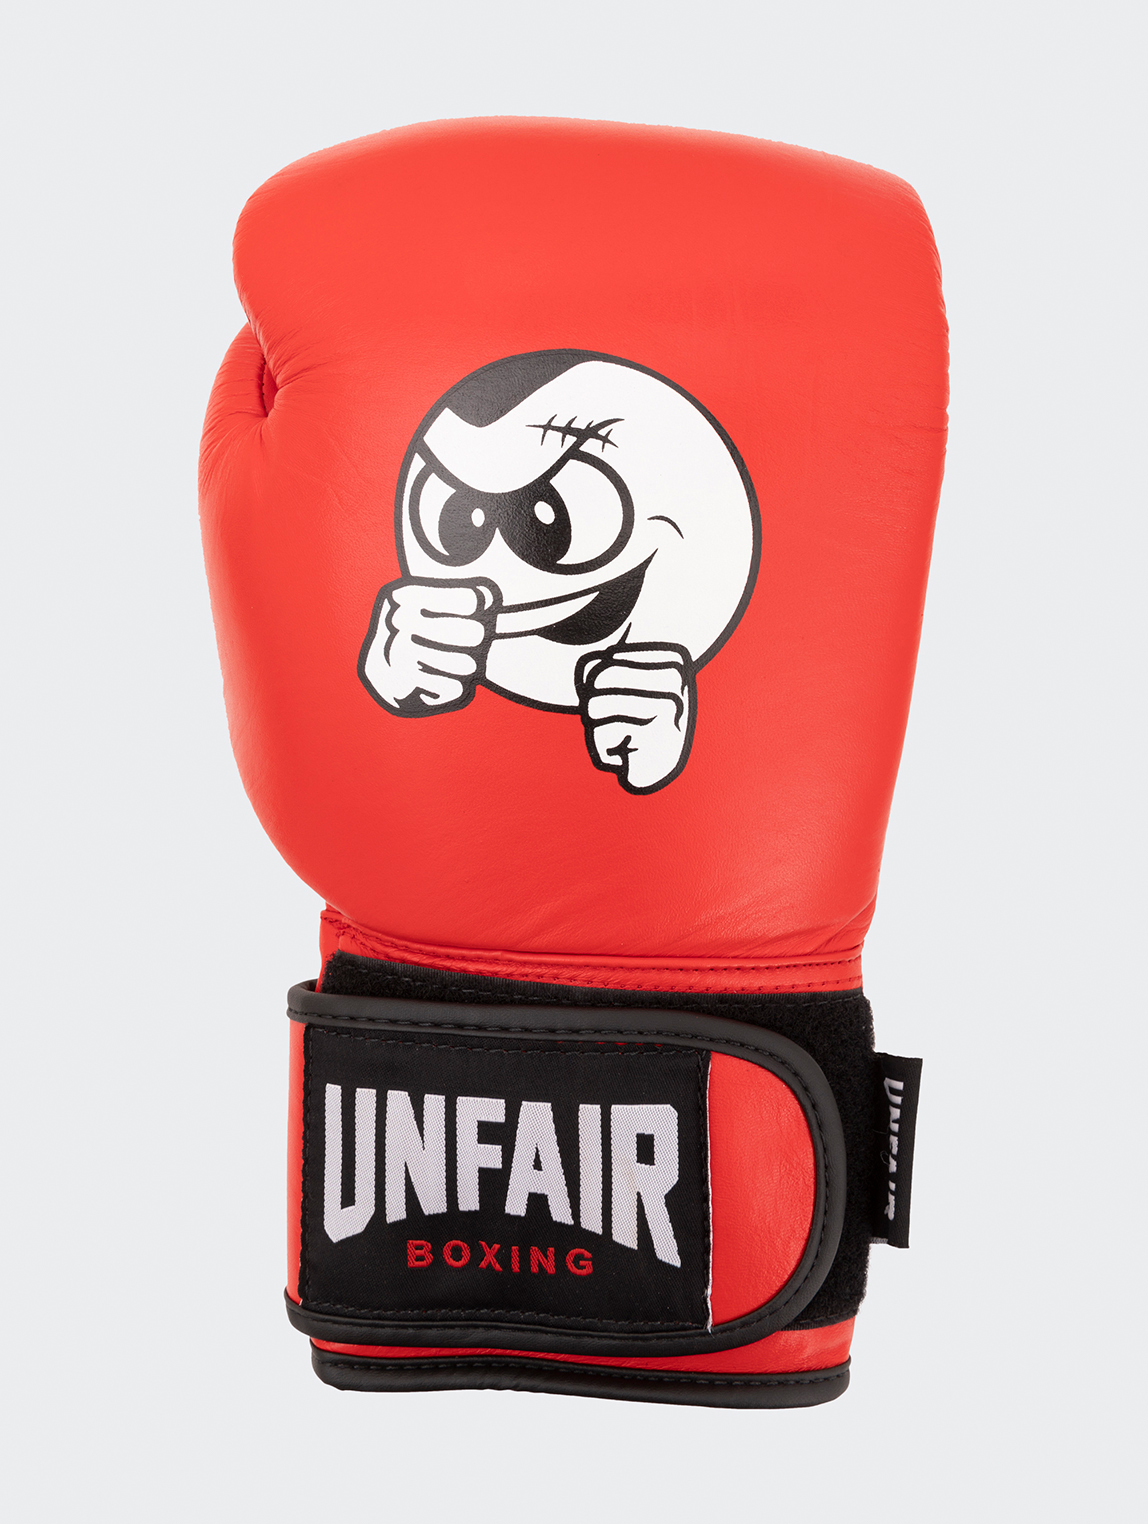 UNFAIR Boxing Gloves Red